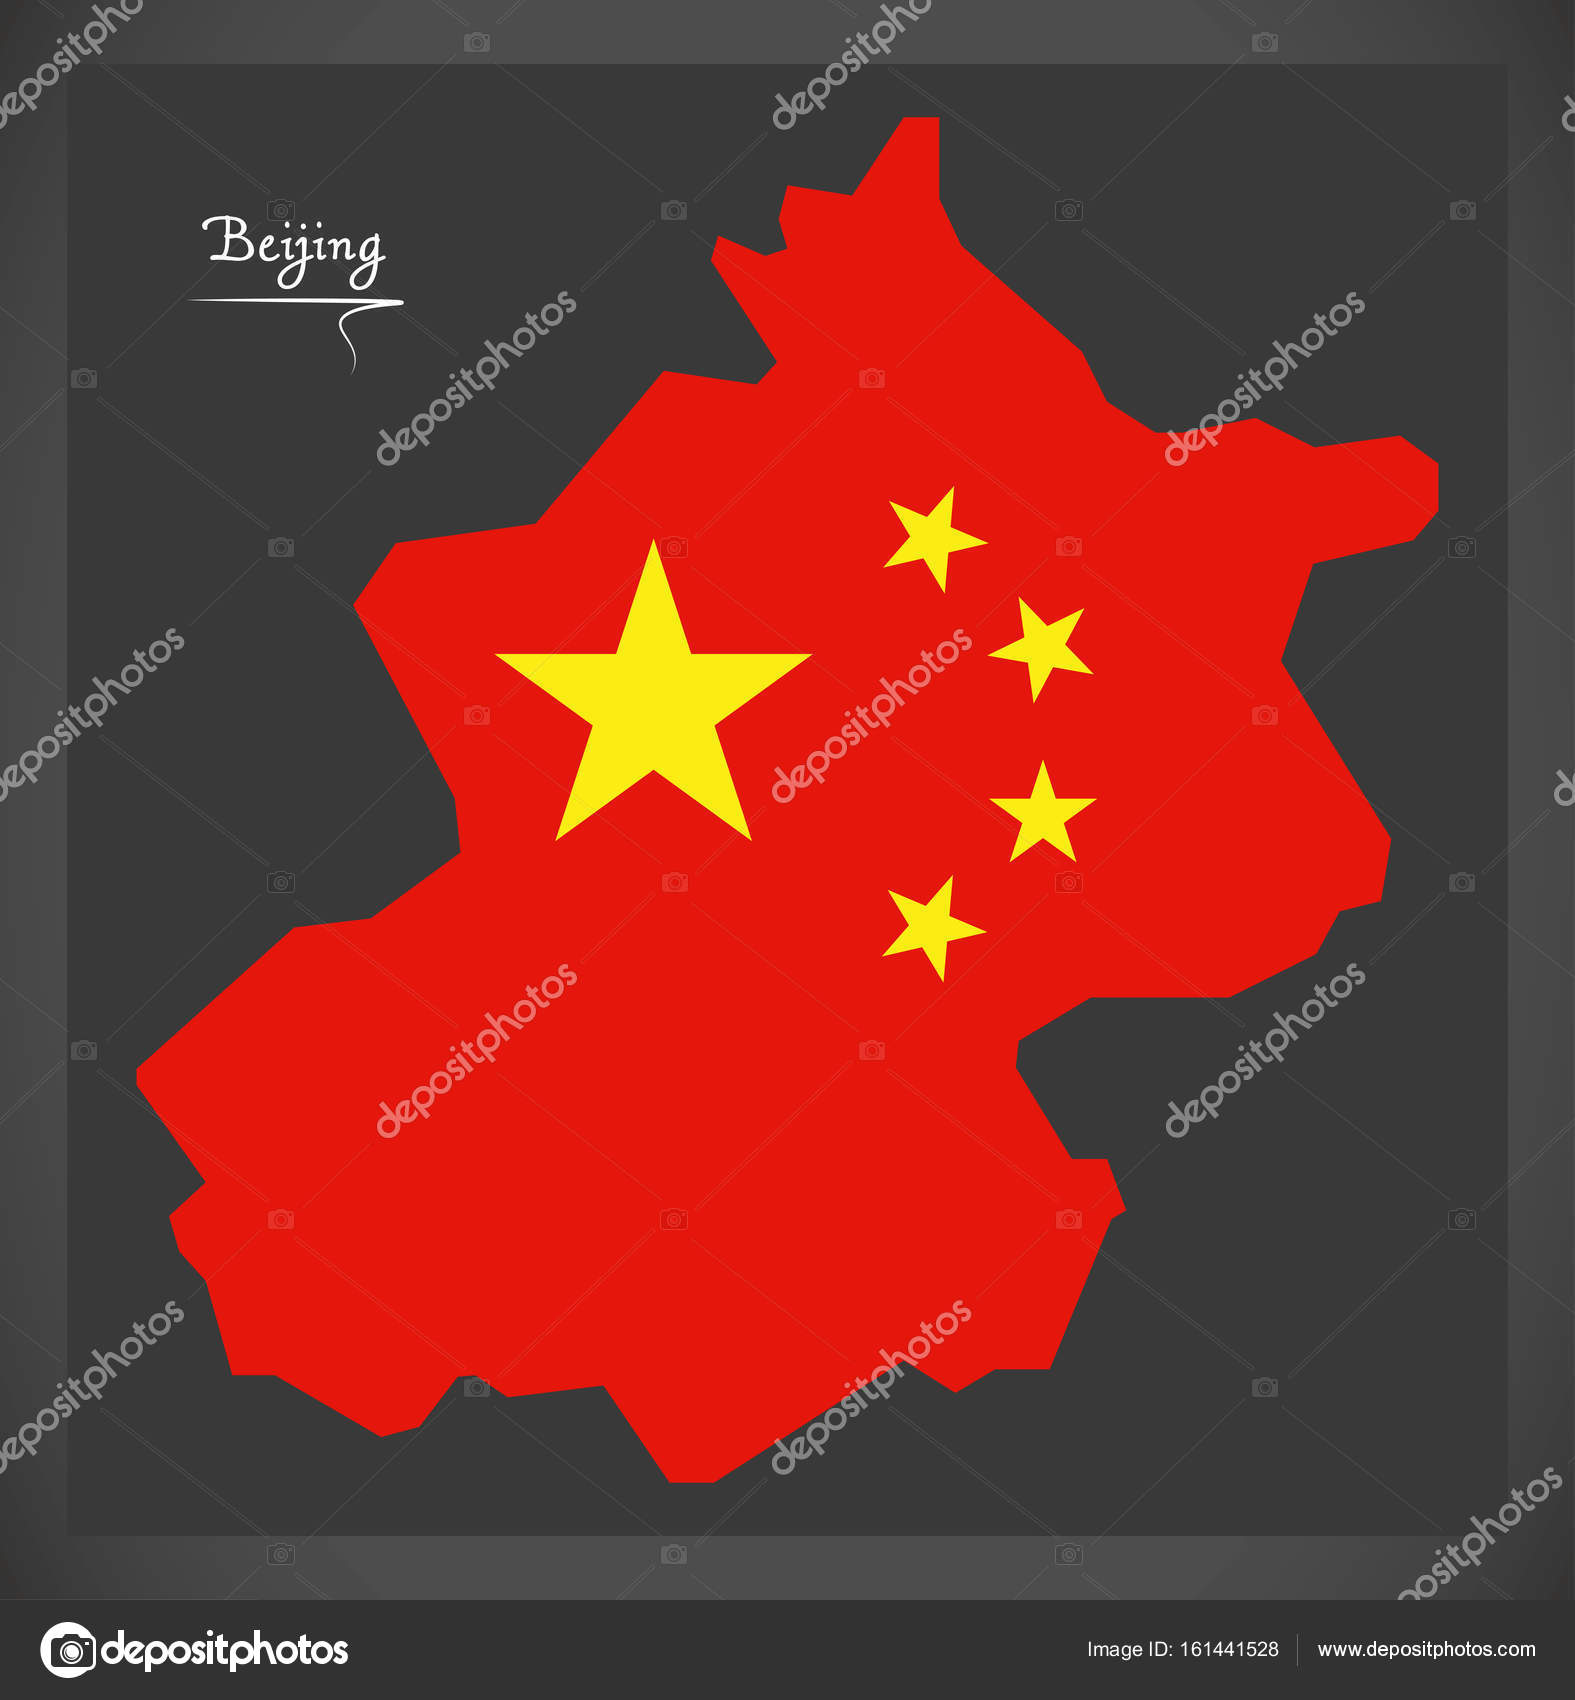 Beijing China Map With Chinese National Flag Illustration Stock